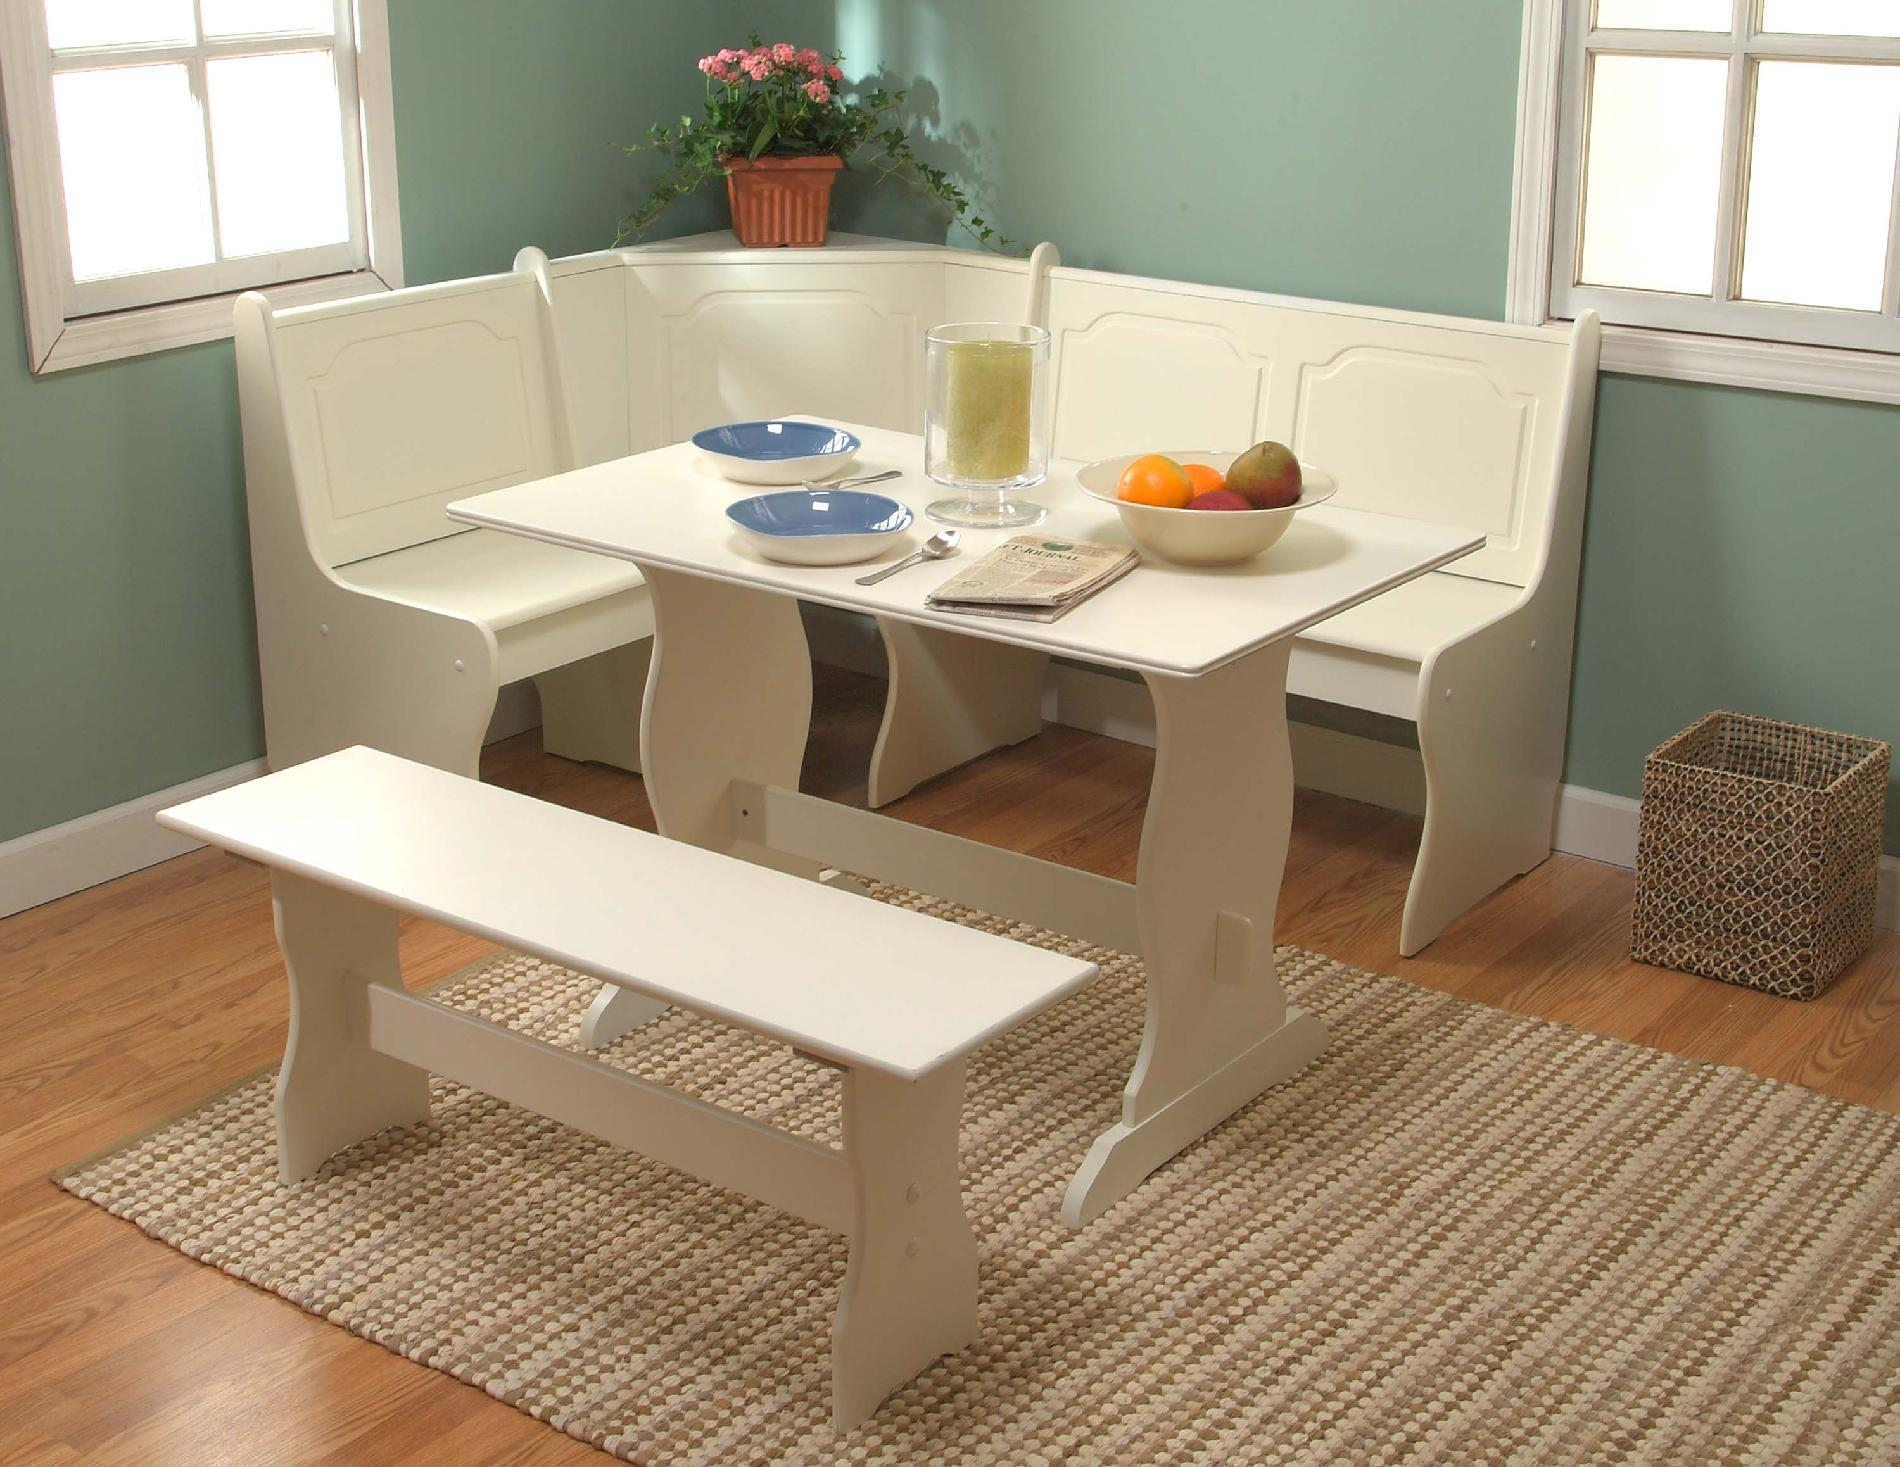 kitchen nook table wayfair chairs breakfast set target marketing systems 3 piece dining with a l shaped storage bench